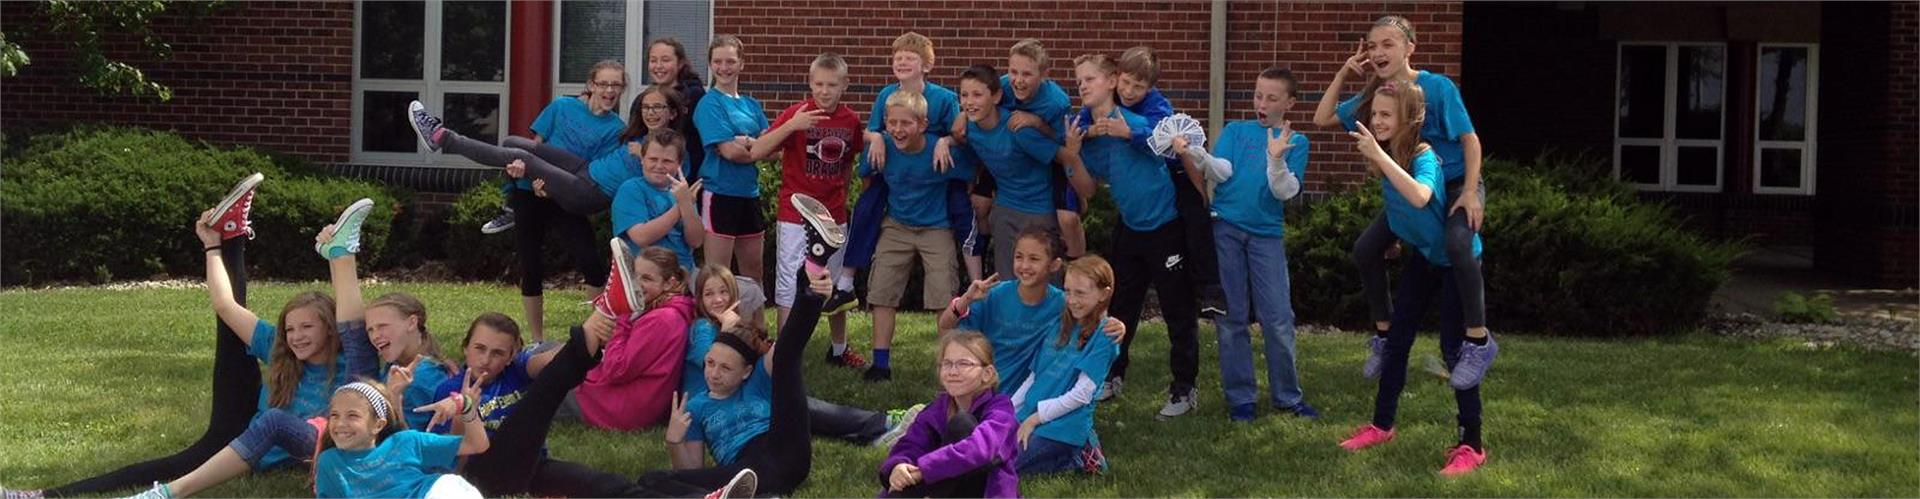 New Palestine Elementary extra-curricular group